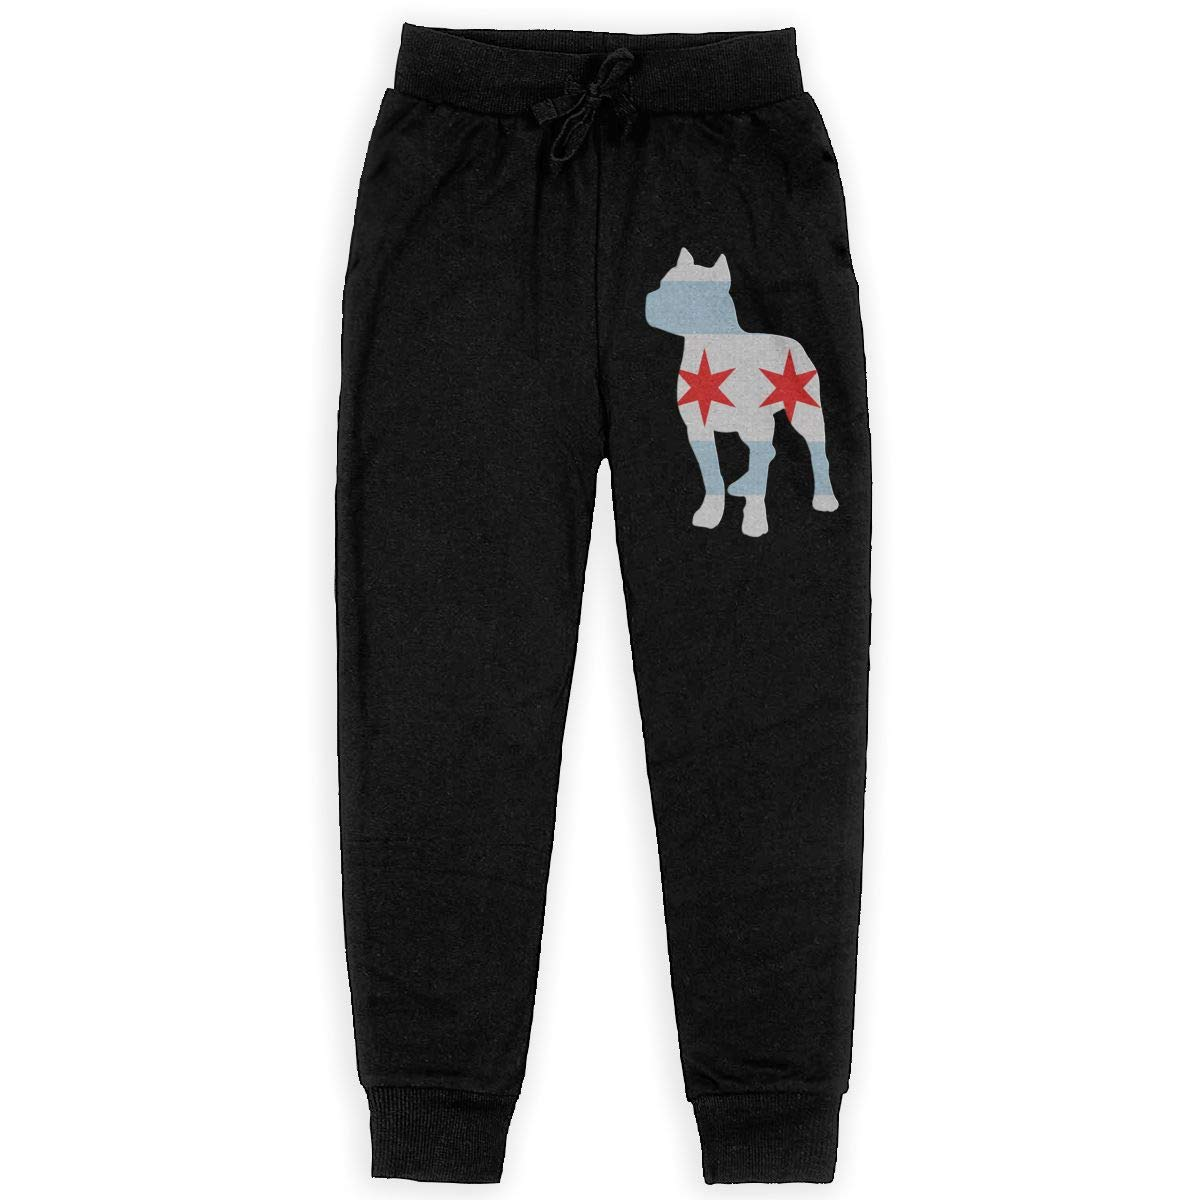 Girls Active Basic Jogger Fleece Pants for Teen Girls WYZVK22 Patriotic Pitbull Chicago Flag Soft//Cozy Sweatpants